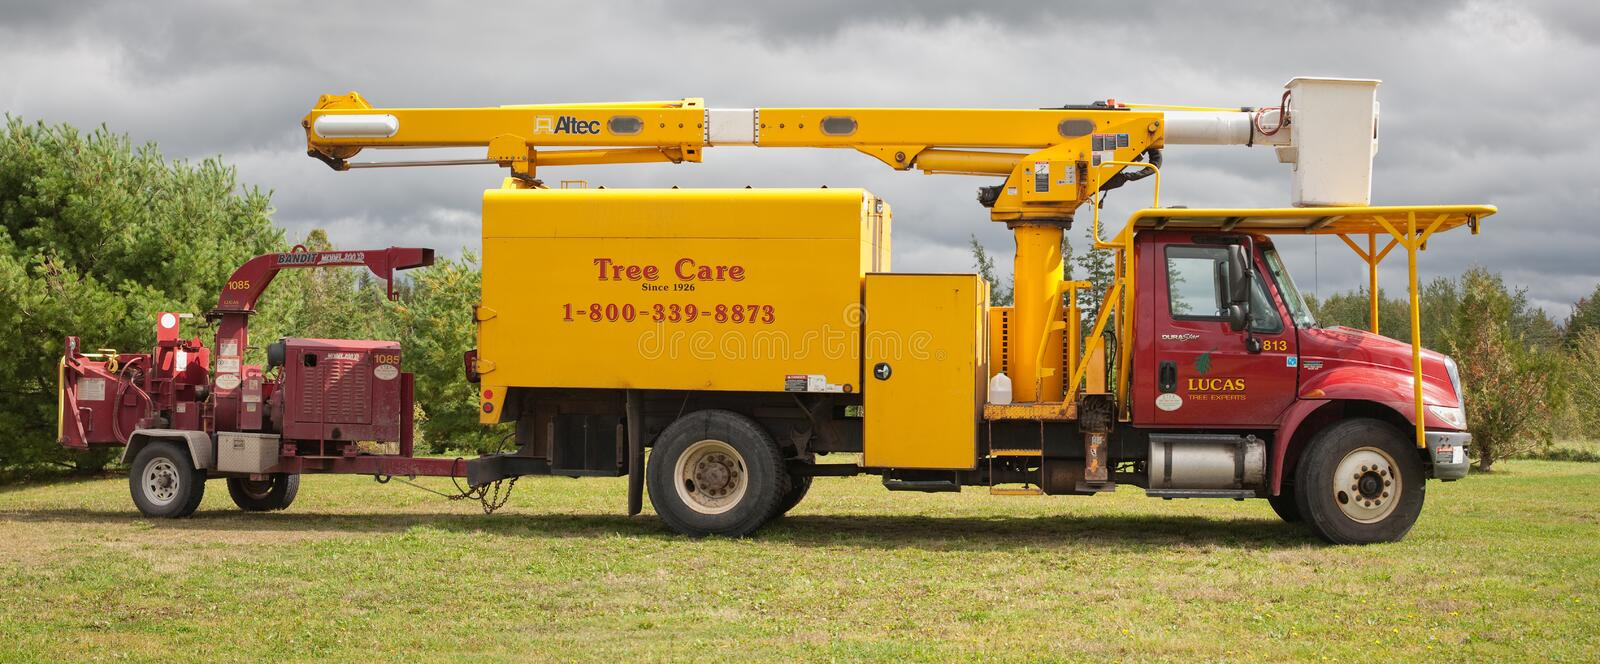 Lucas Tree Experts Utility Truck fotografia stock